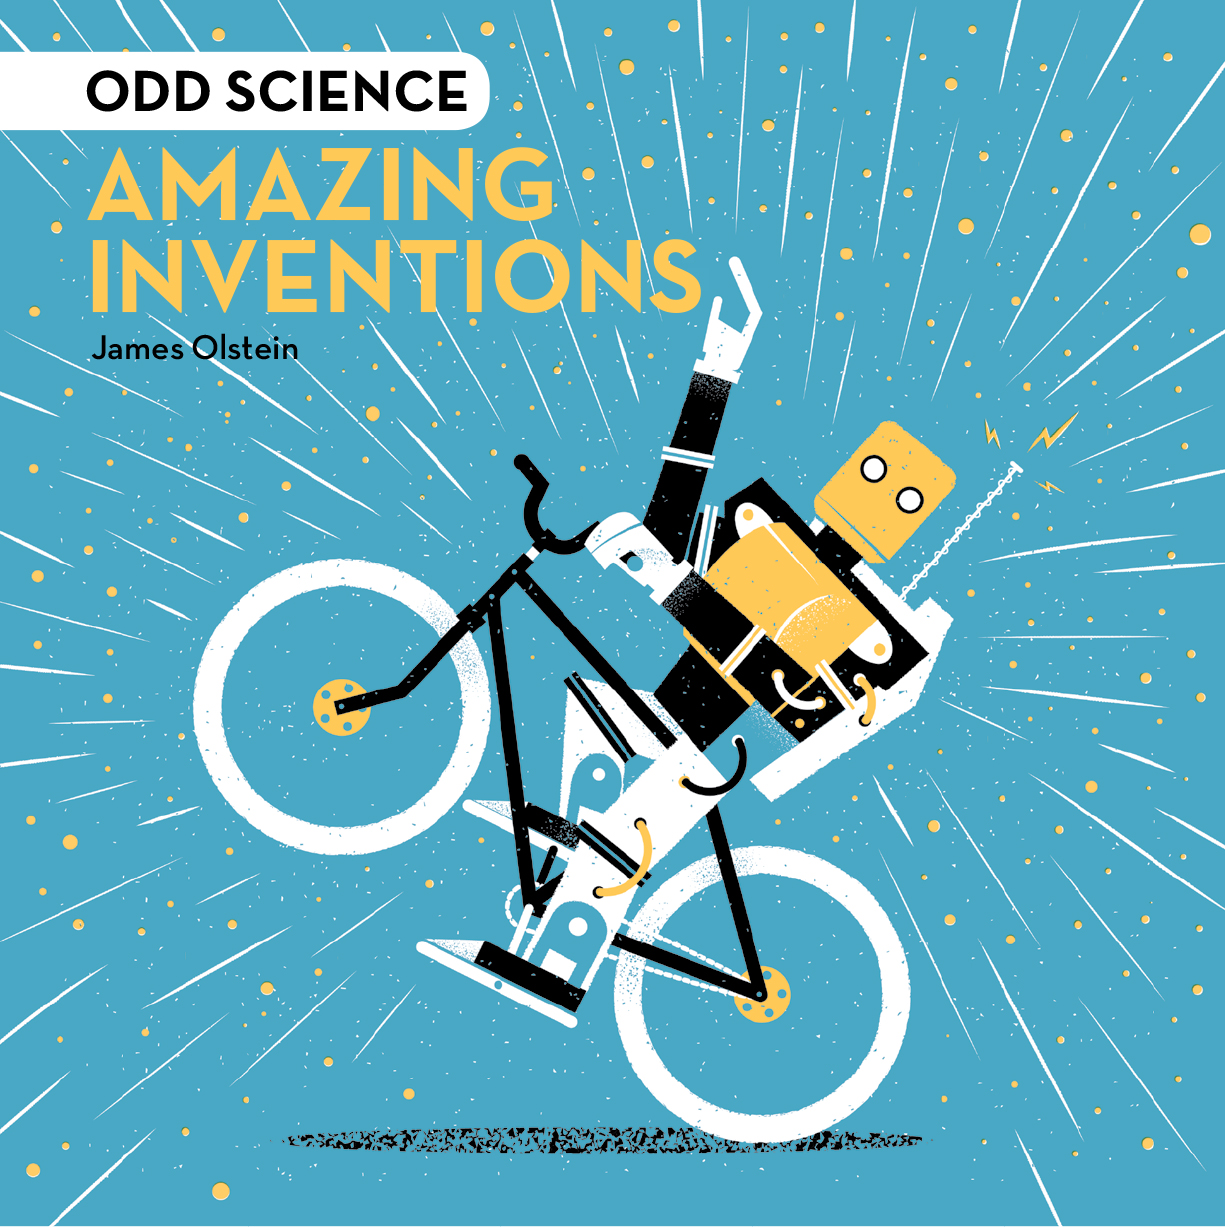 Odd Science – Amazing Inventions